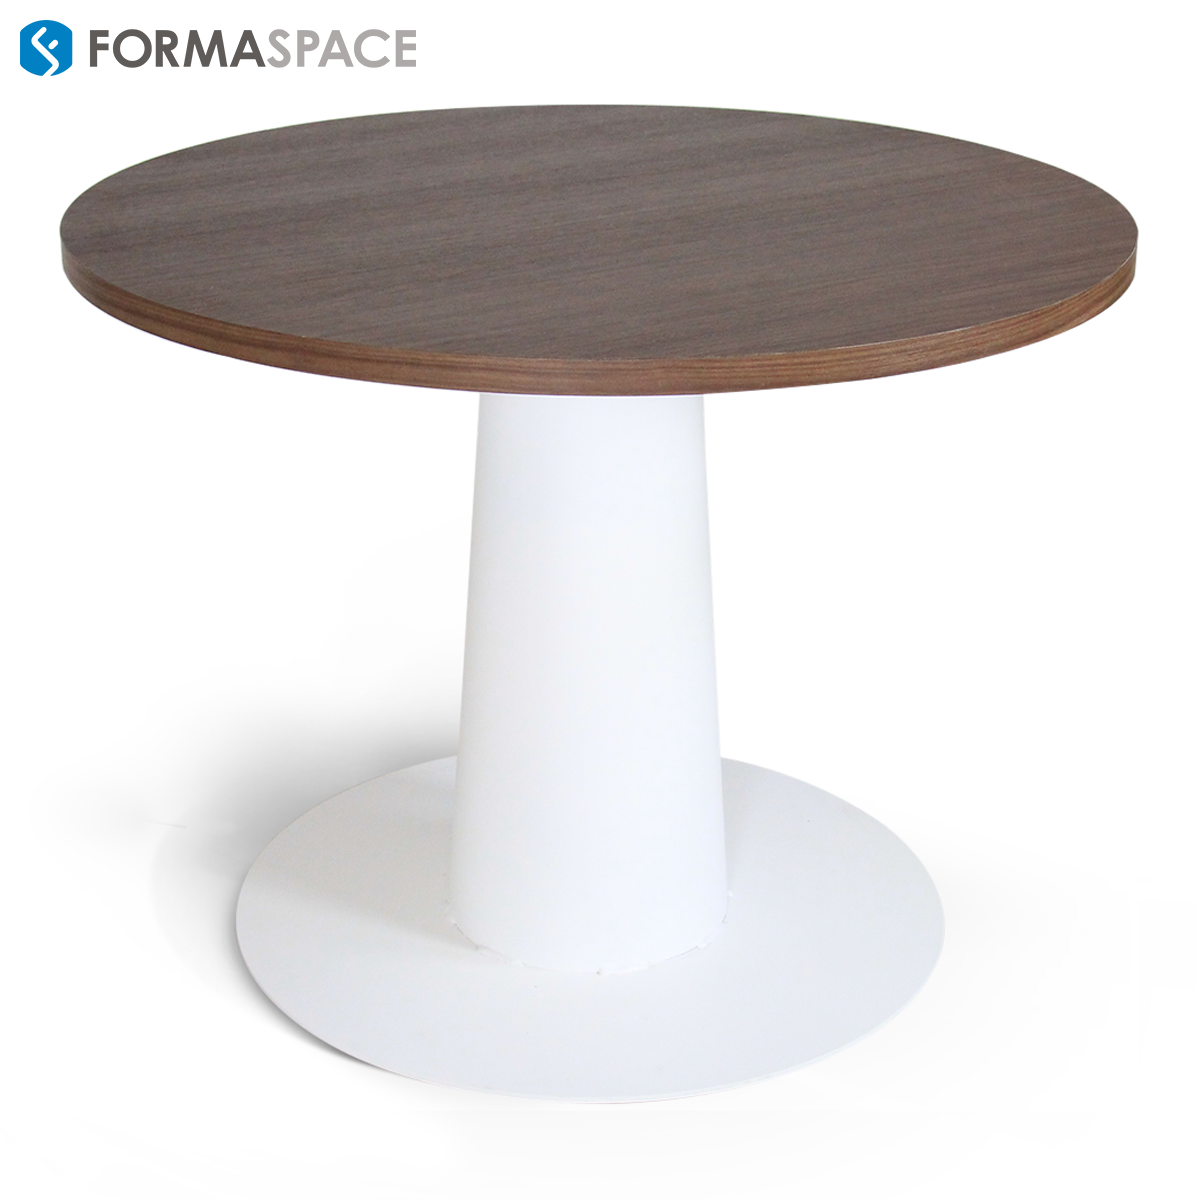 Piece Round Meeting Table FORMASPACE Fundboxs Small - Round conference table for 4